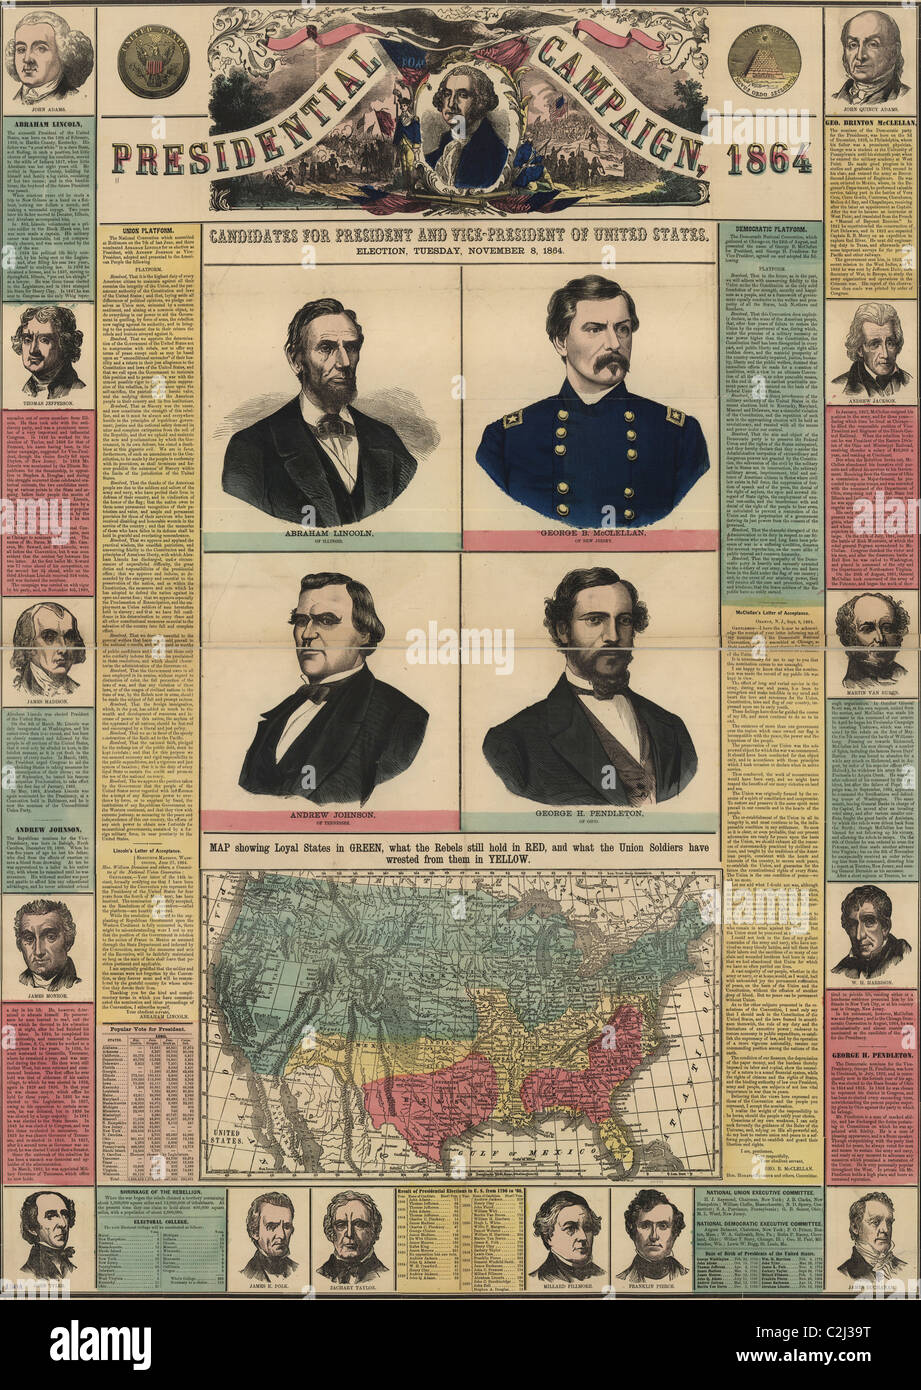 Presidential Campaign of 1864 - Stock Image